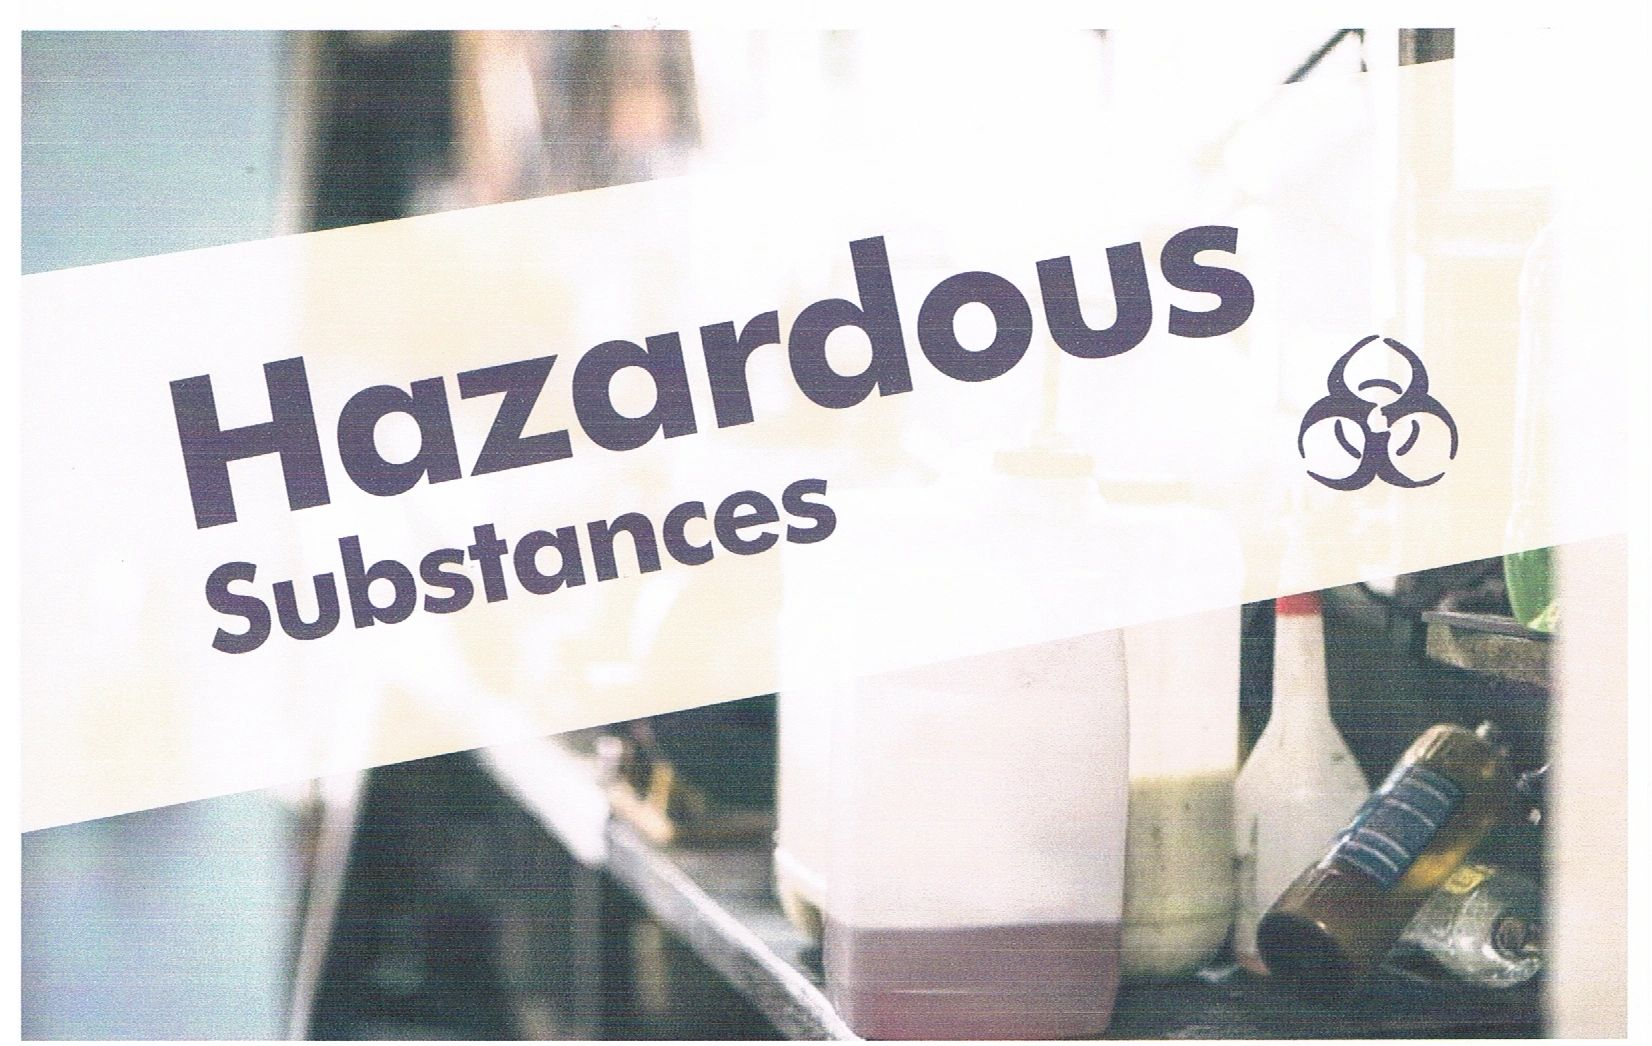 Business Systems Sorted Hazardous Substance services